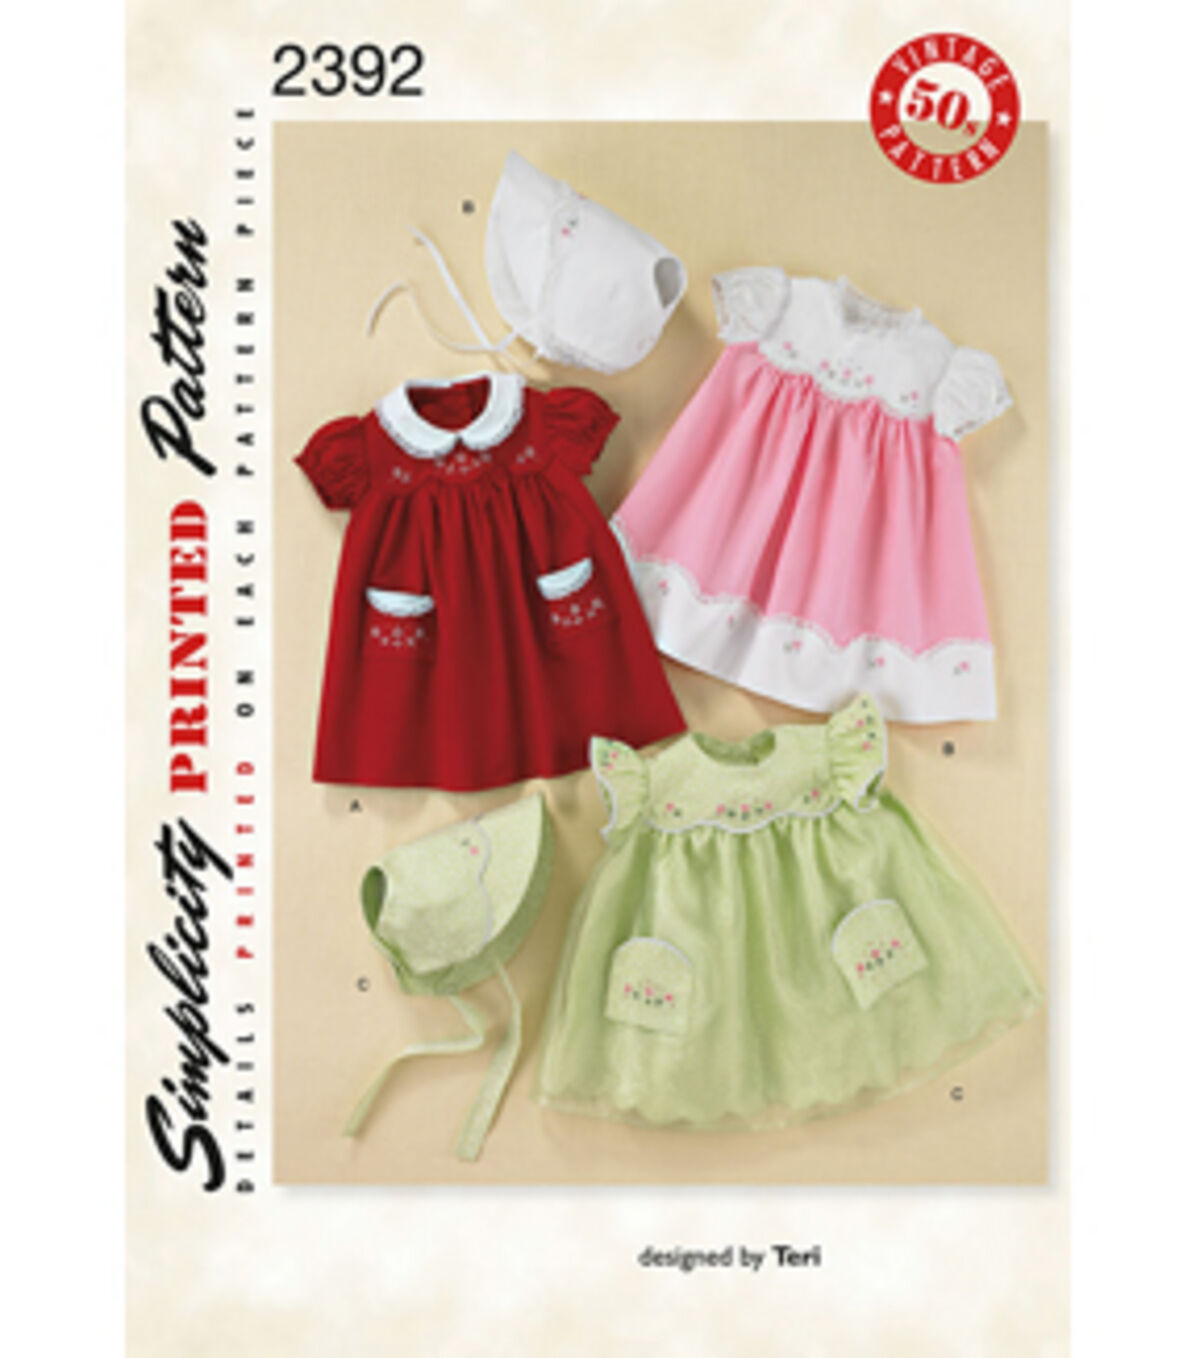 Kids 1950s Clothing & Costumes: Girls, Boys, Toddlers Simplicity Pattern 2392A Xs - S - M - L - Simplicity Crafts $16.95 AT vintagedancer.com